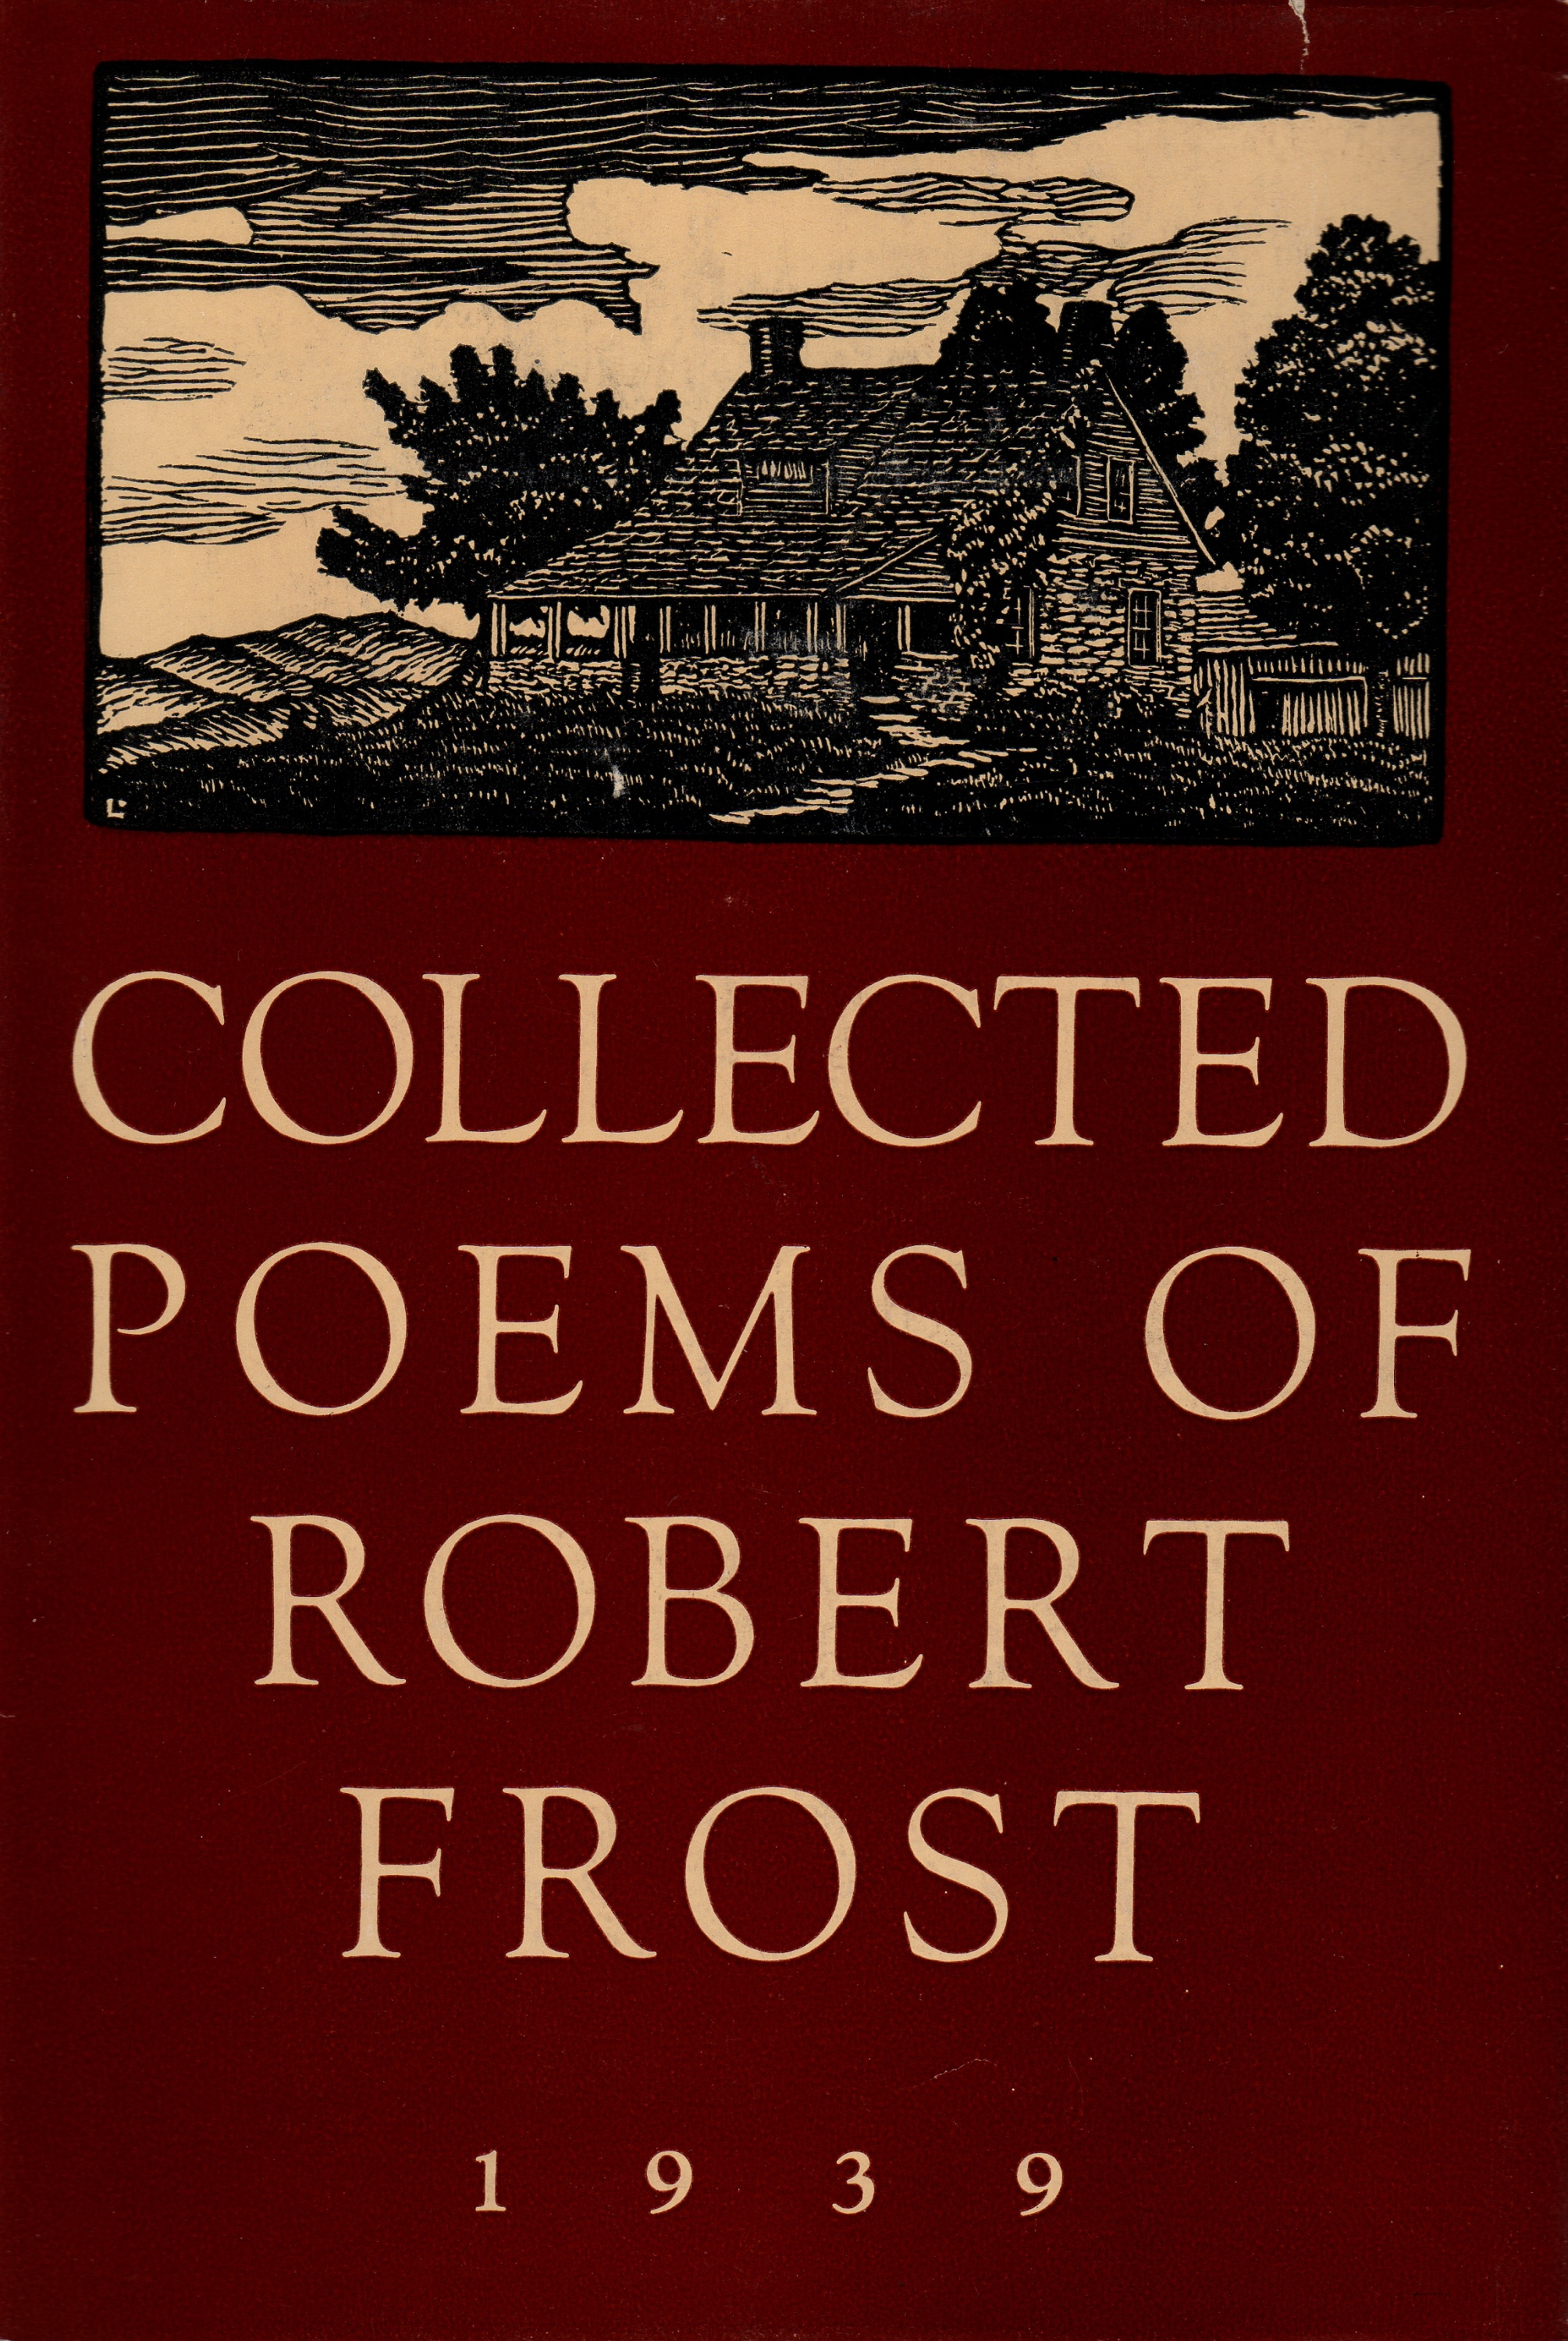 a literary analysis of the death of the hired man a poem by robert frost Focuses on the life and works of writer robert frost criticism and interpretation of the book 'robert frost: modern poetics and the landscapes of self,' by frank lentricchia views of lentricchia on the poems of frost presence of subjectivity on the poems the death of the hired man frost, robert // north of boston (public domain)1915, p14.